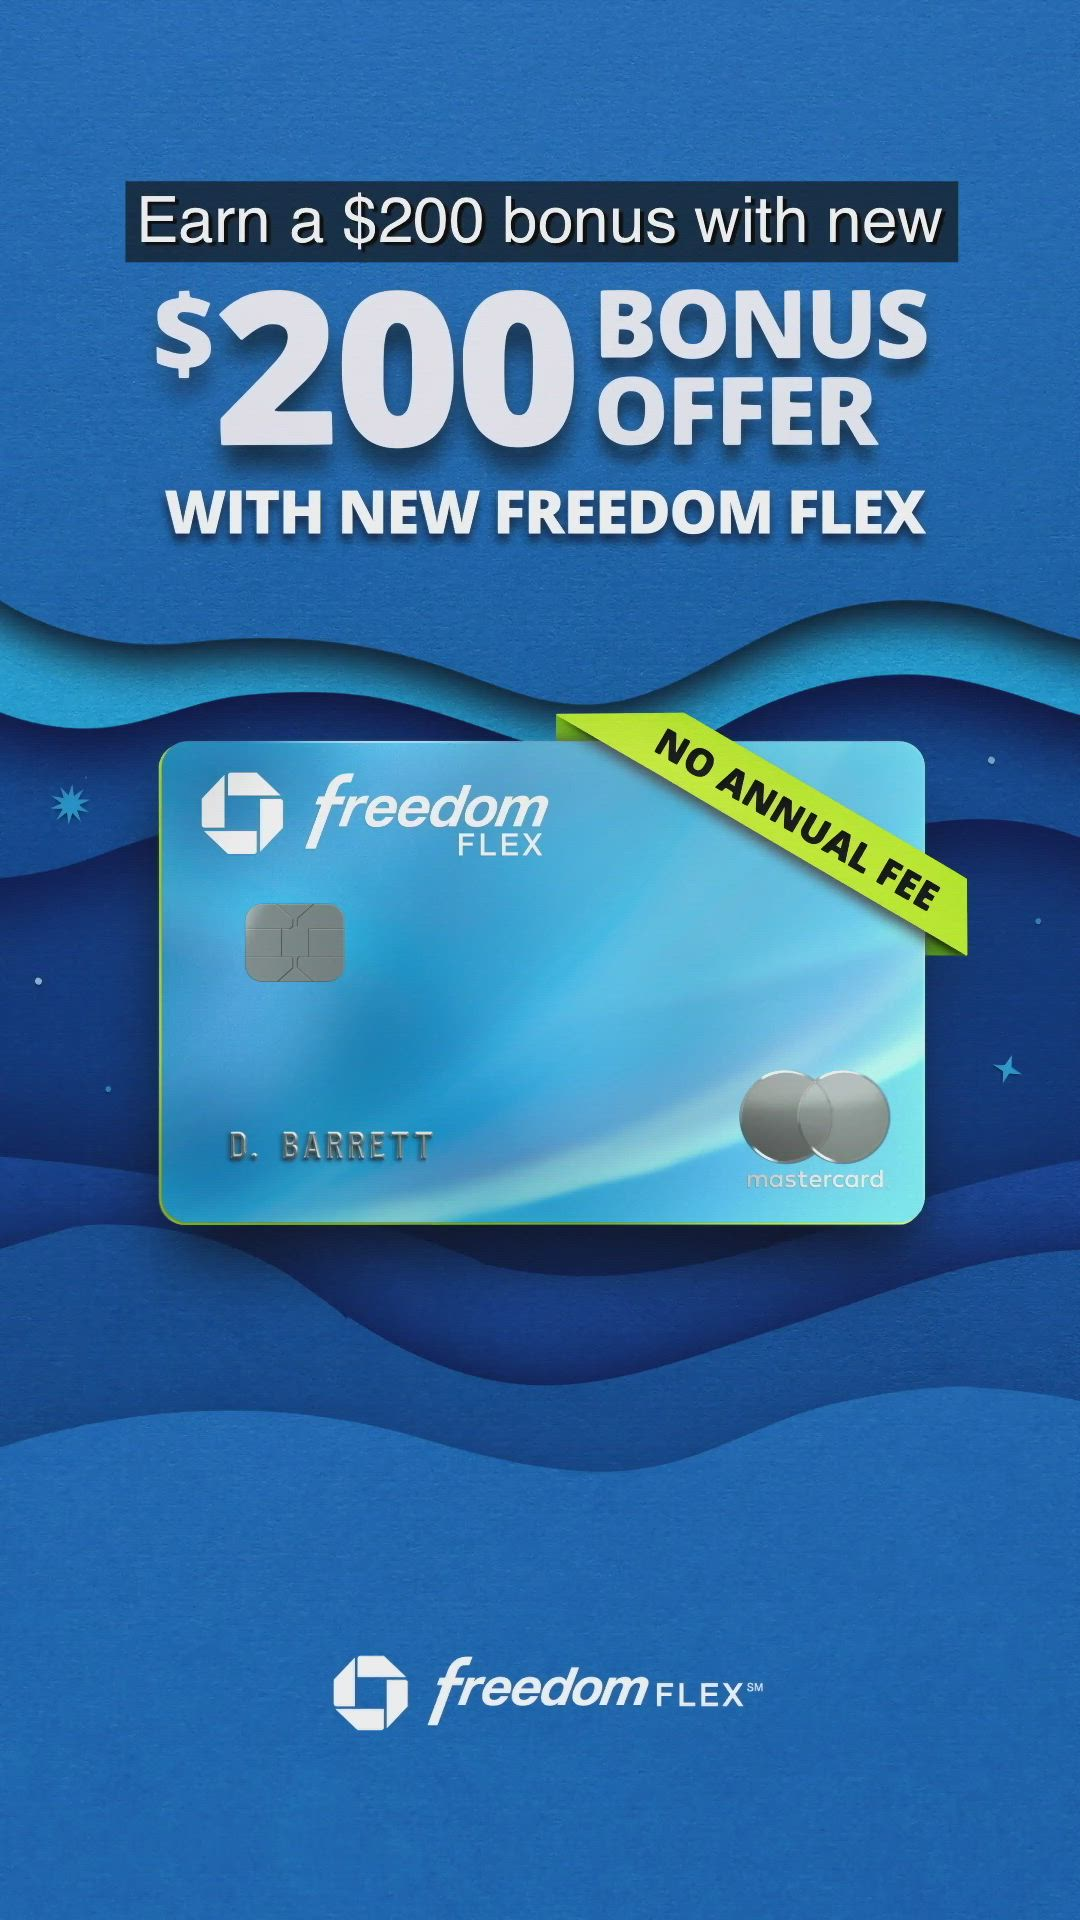 Chase Freedom Flex Video In 2021 Chase Freedom Freedom How To Apply